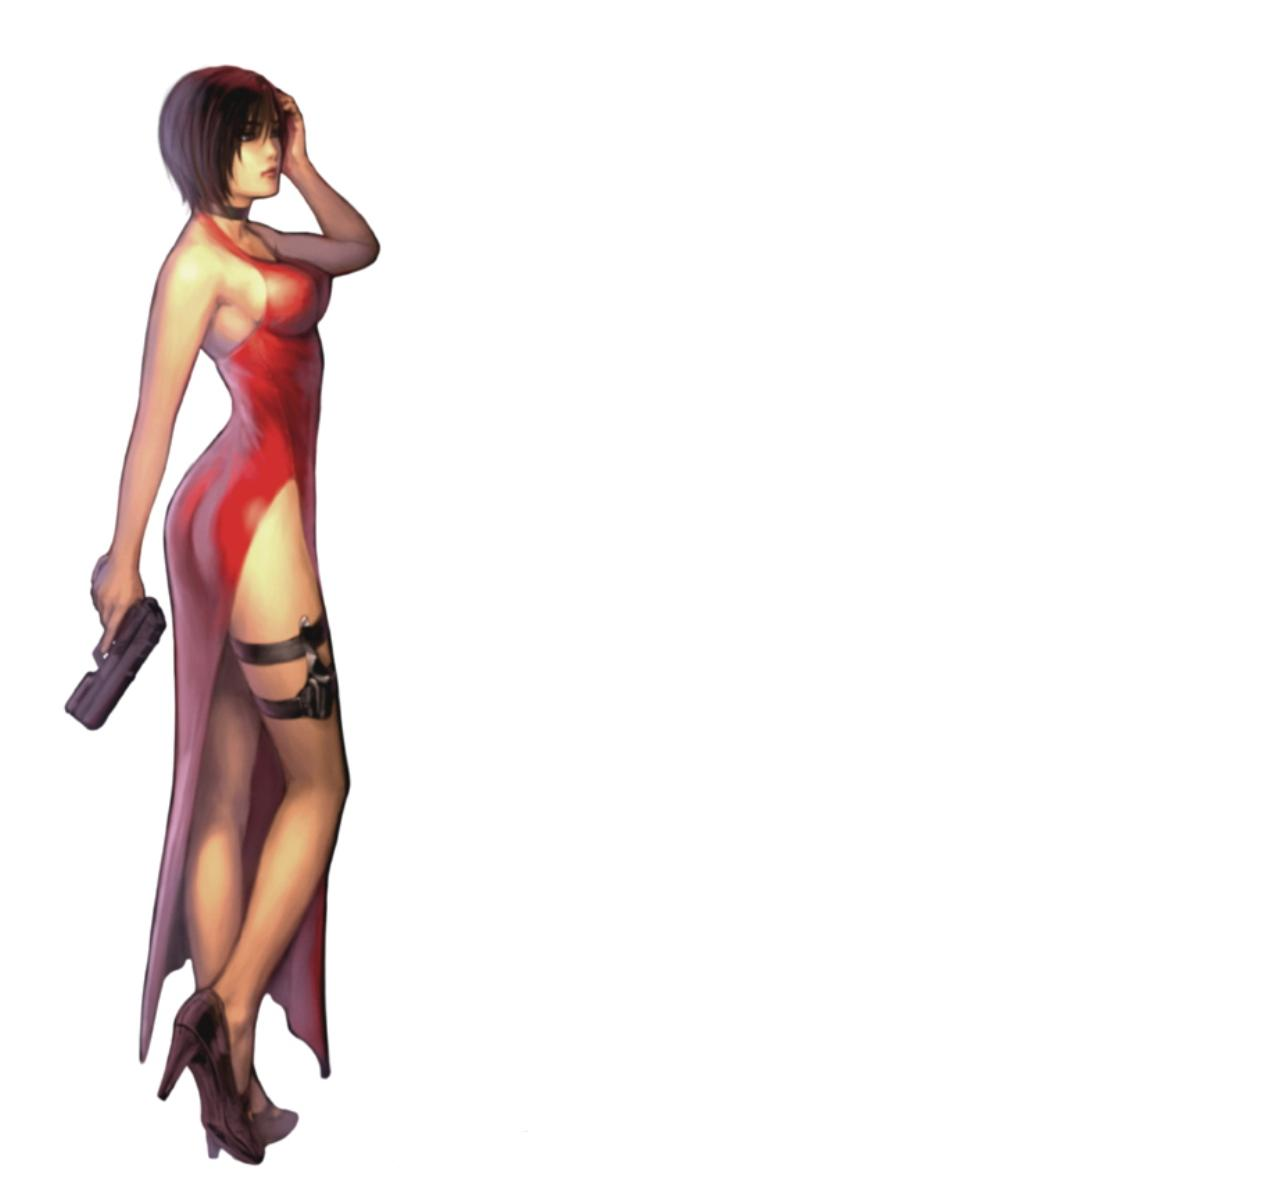 Resident evil female characters porn exposed images